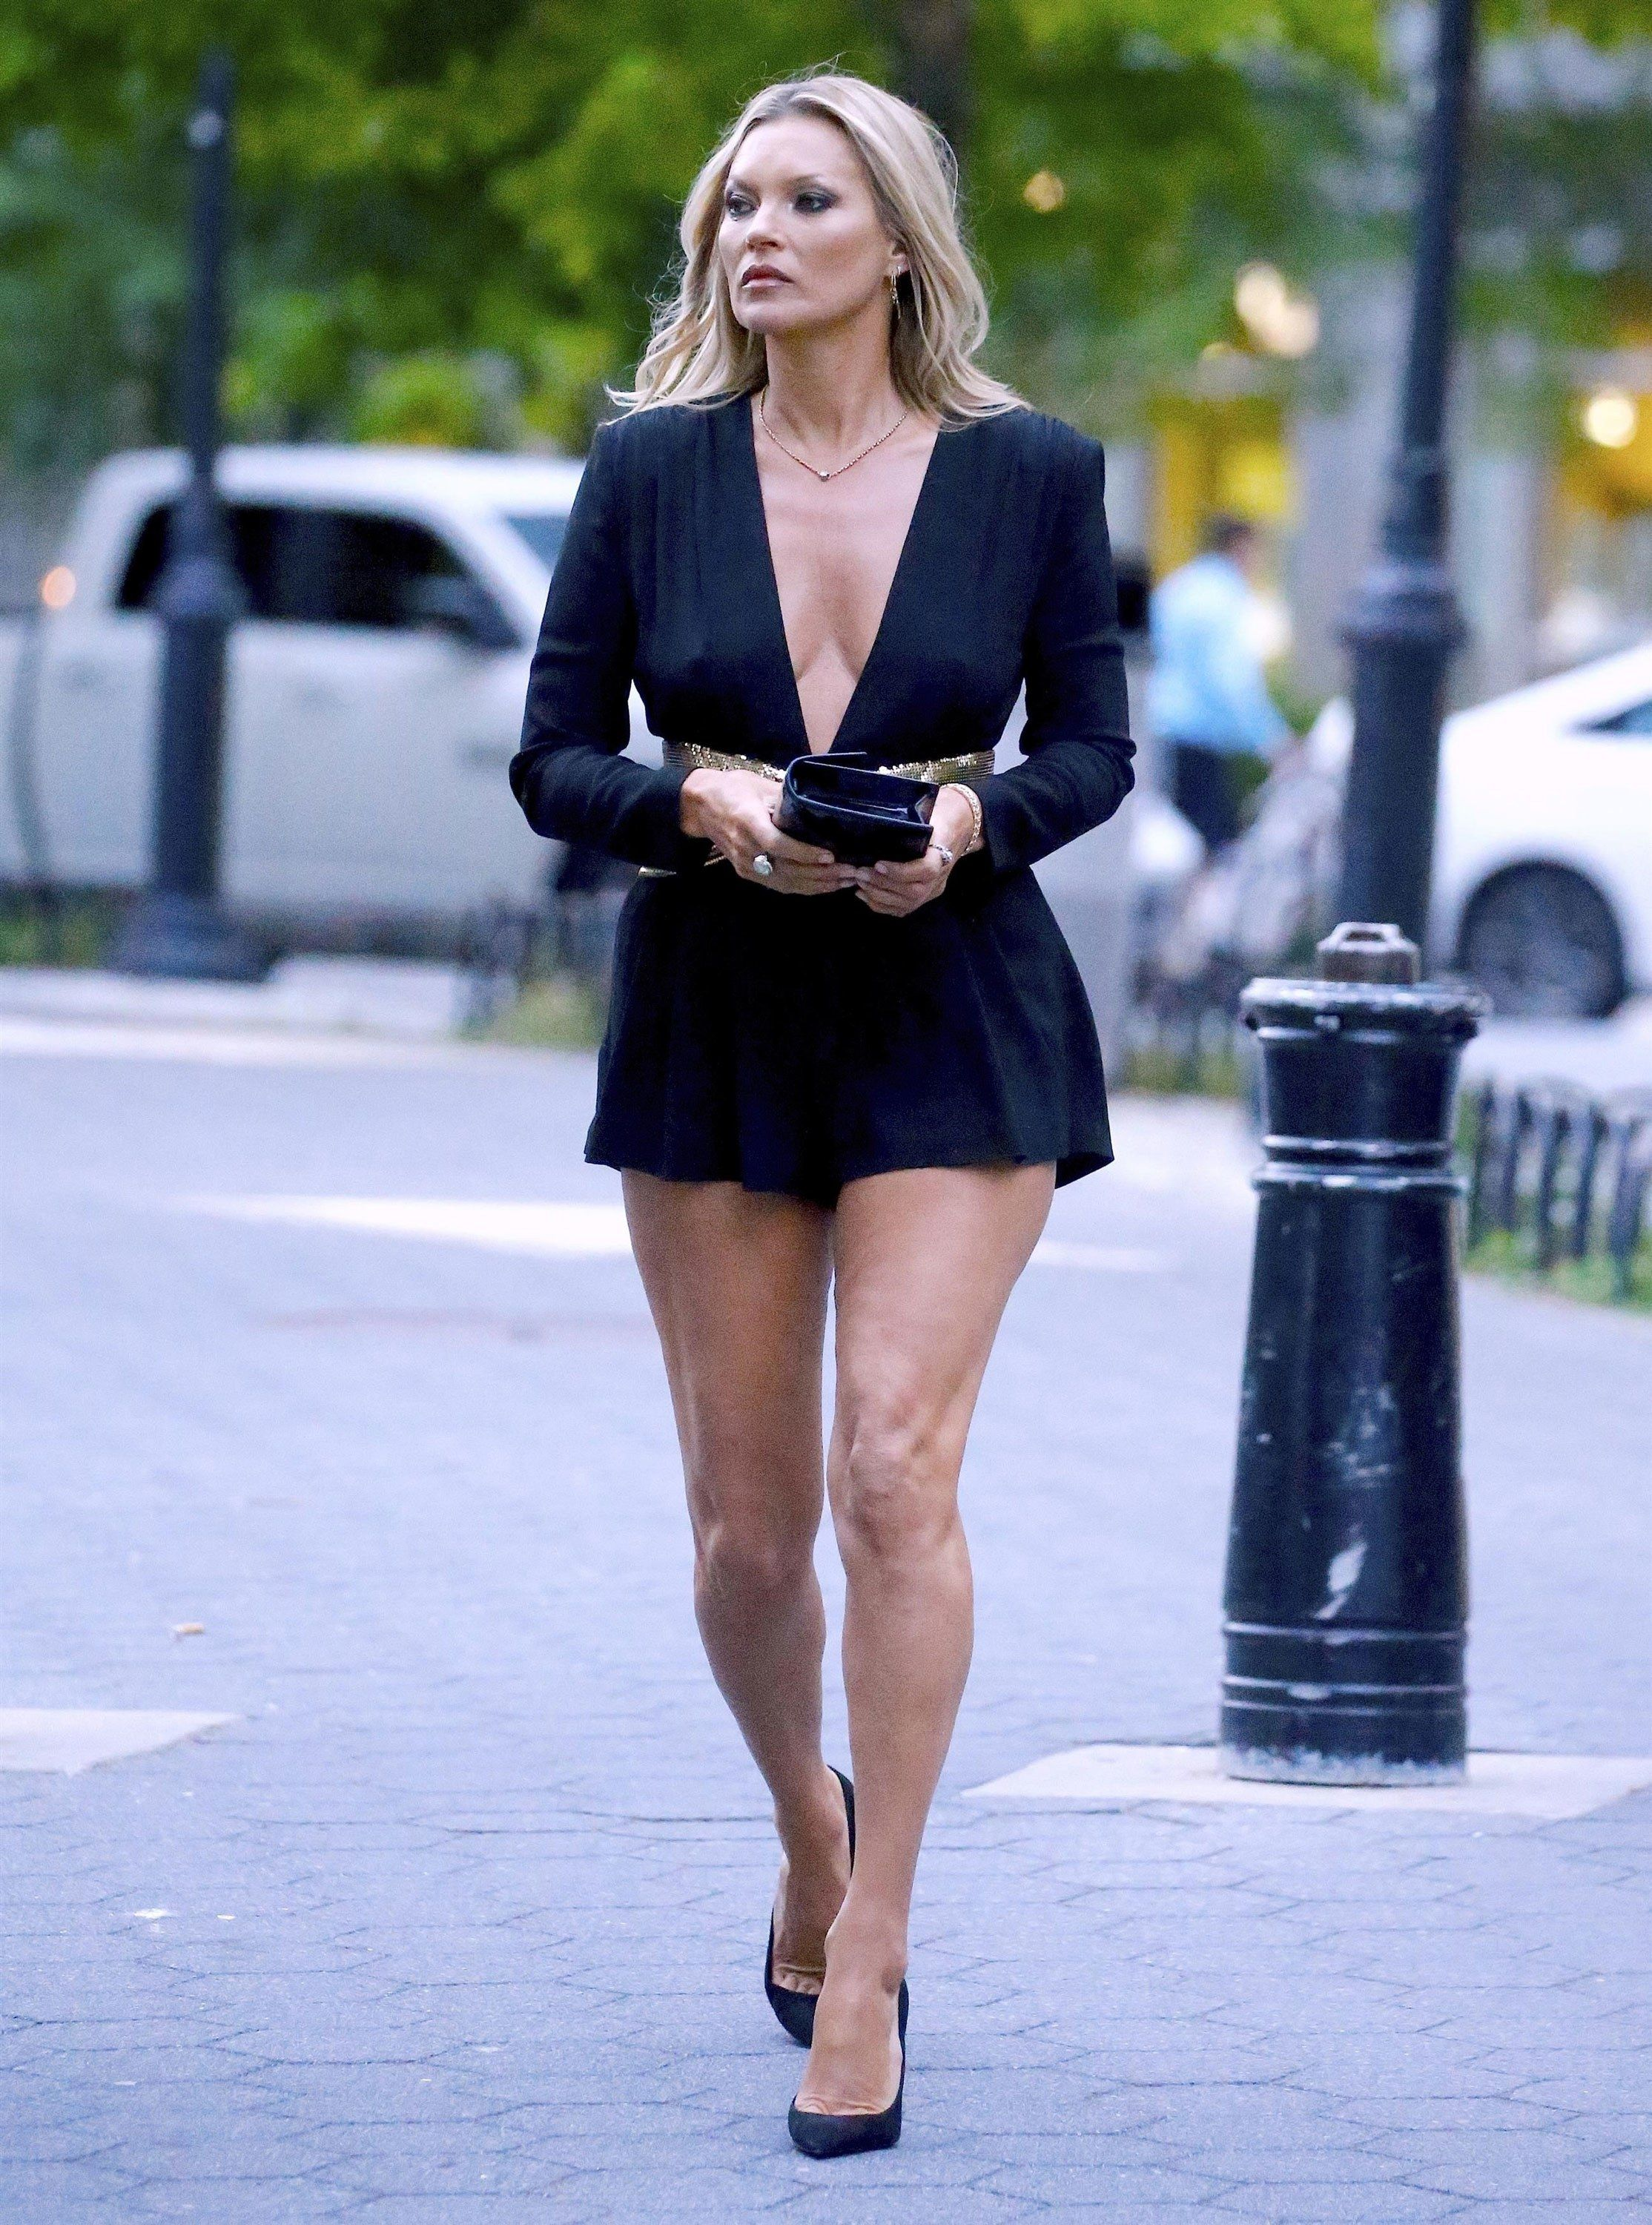 d79a9f7005 Kate Moss Proves Why 40 Is the New 20 With a Jaw-Dropping Leg Reveal